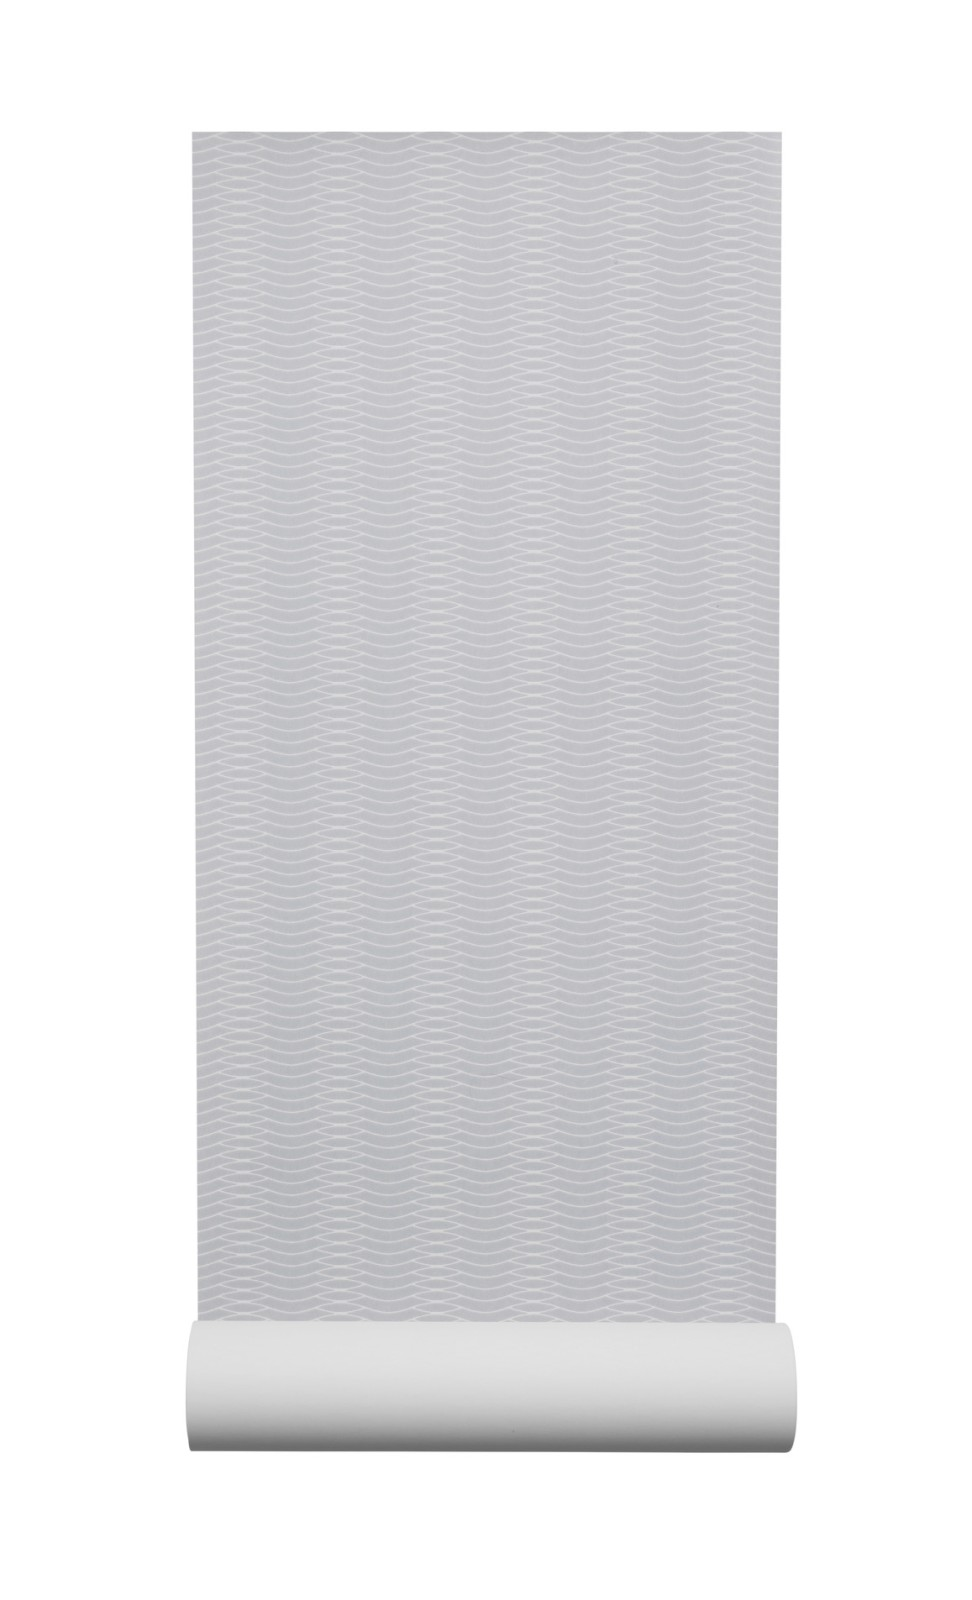 Liinus Wallpaper - Set of 6 Grey with White Lines